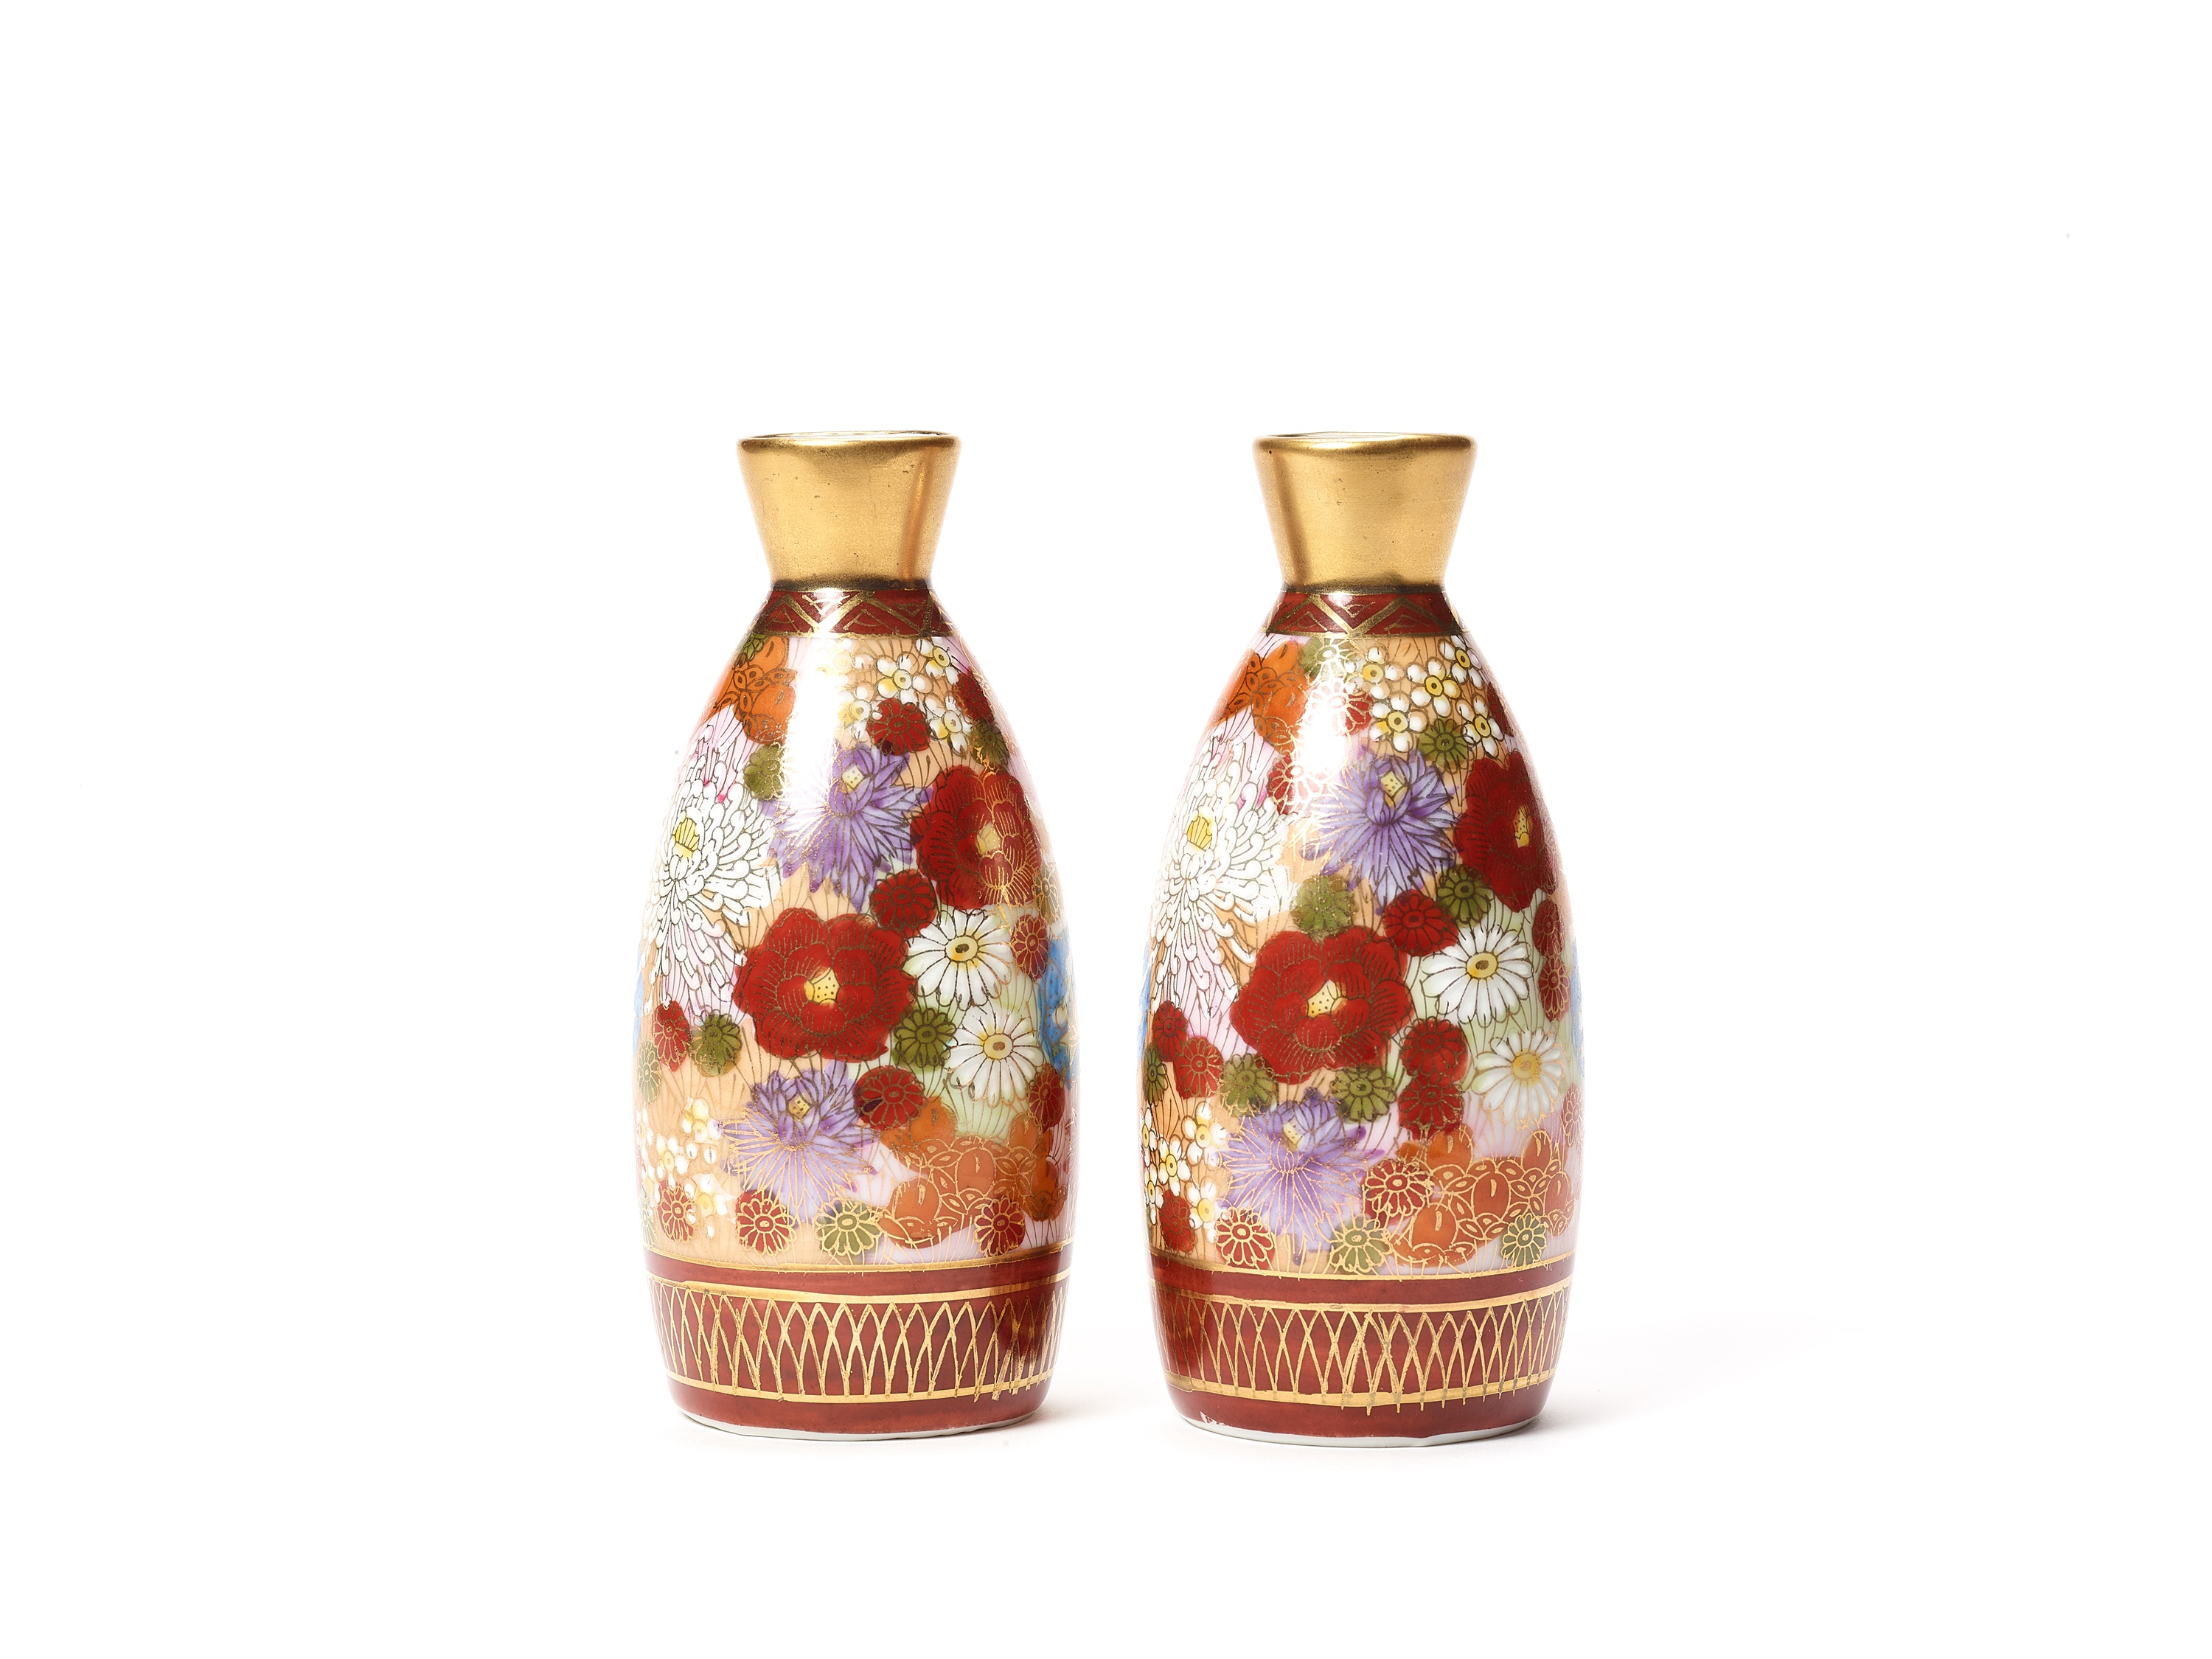 TWO SMALL VASES, SIGNED SHUSAN, AND FOUR SAKE CUPS WITH FLORAL DECORATIONS - Image 3 of 8